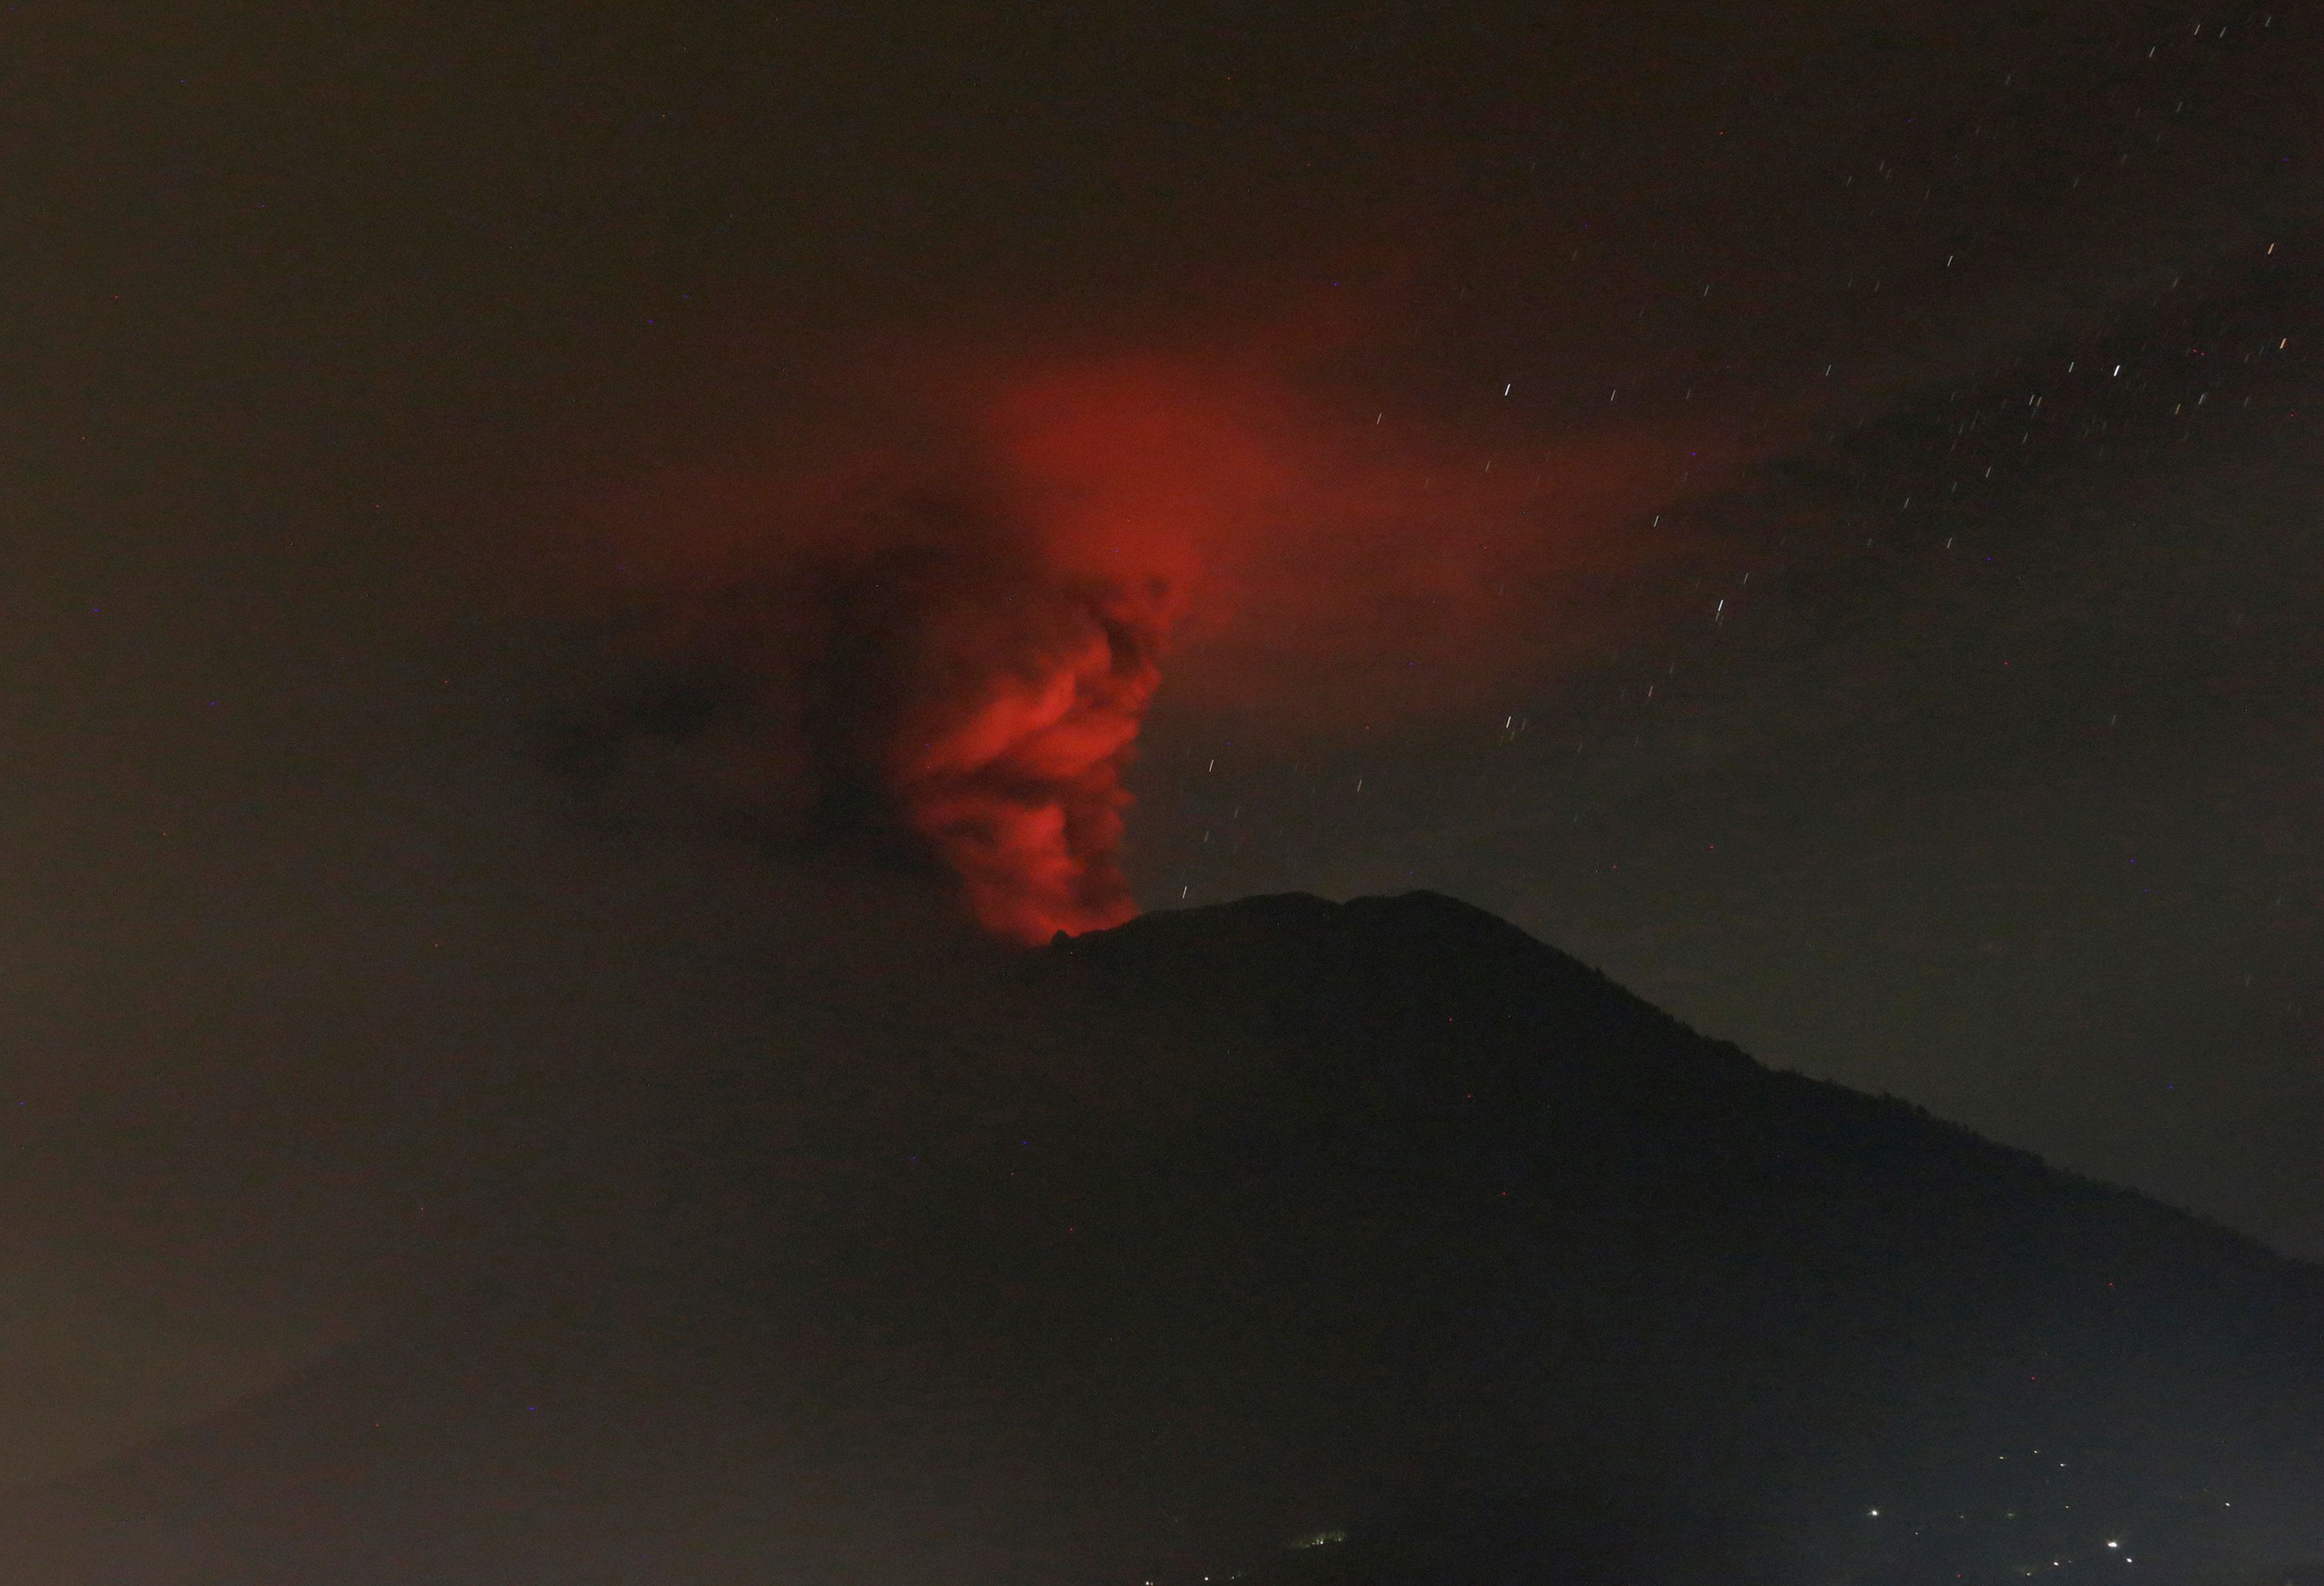 Bali Issues Red Alert, Orders Evacuations As Mount Agung Volcano